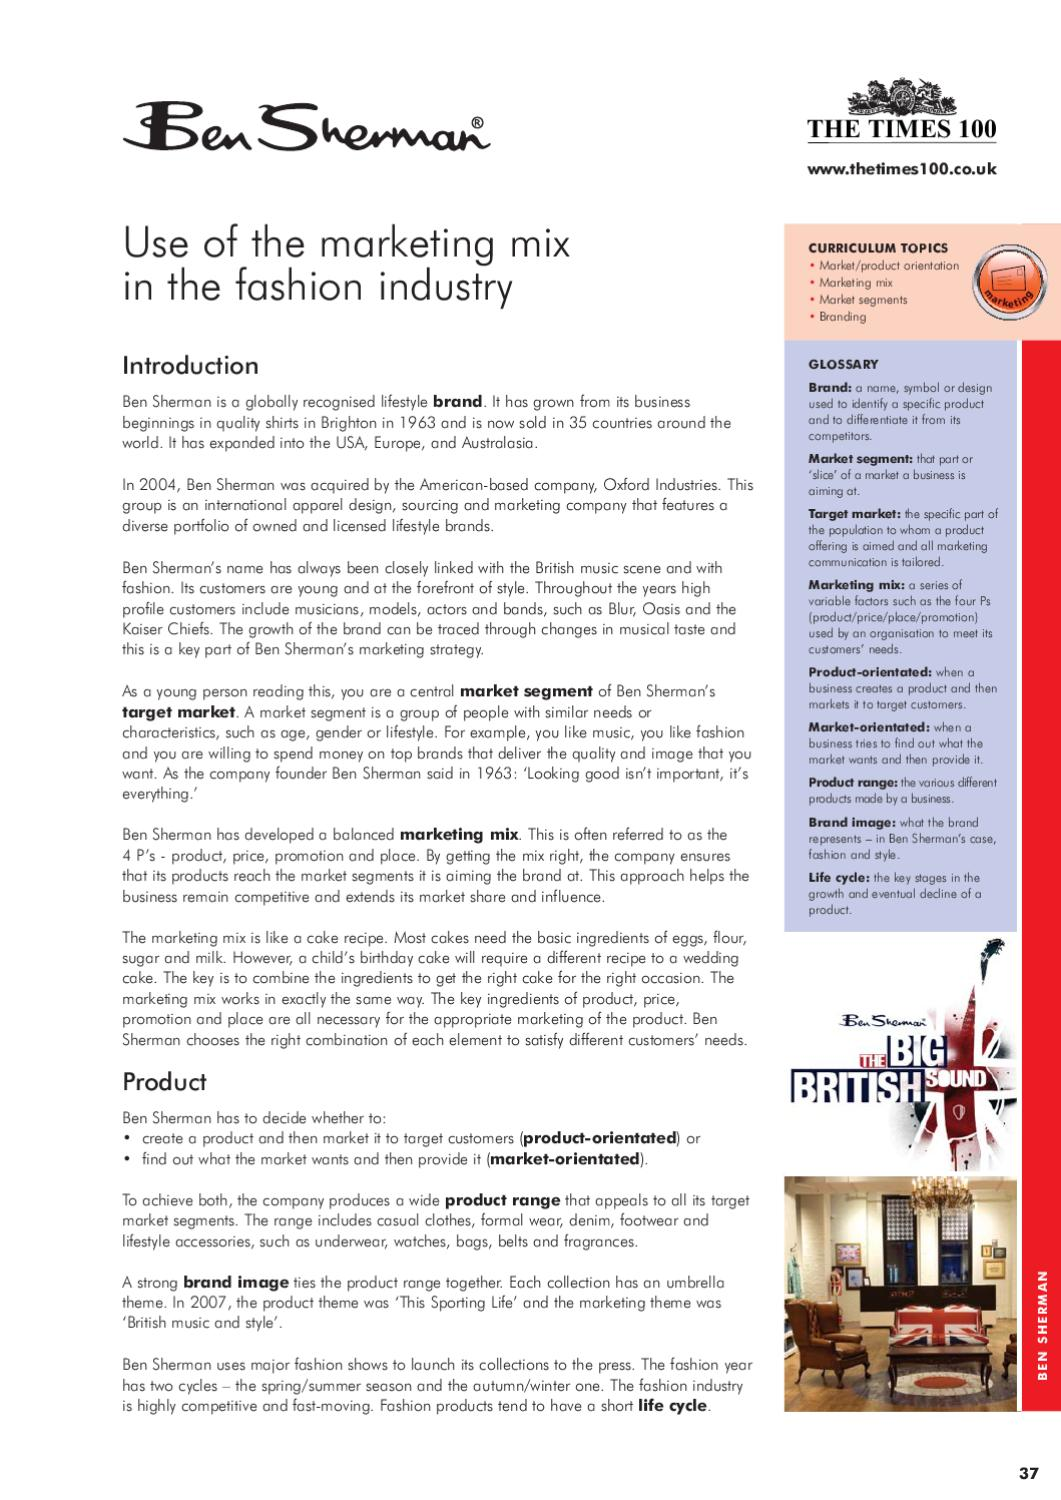 assignment on ben sherman case study This marketing mix case study examines how ben sherman uses the marketing  mix to help the business remain competitive and extend its market share and.